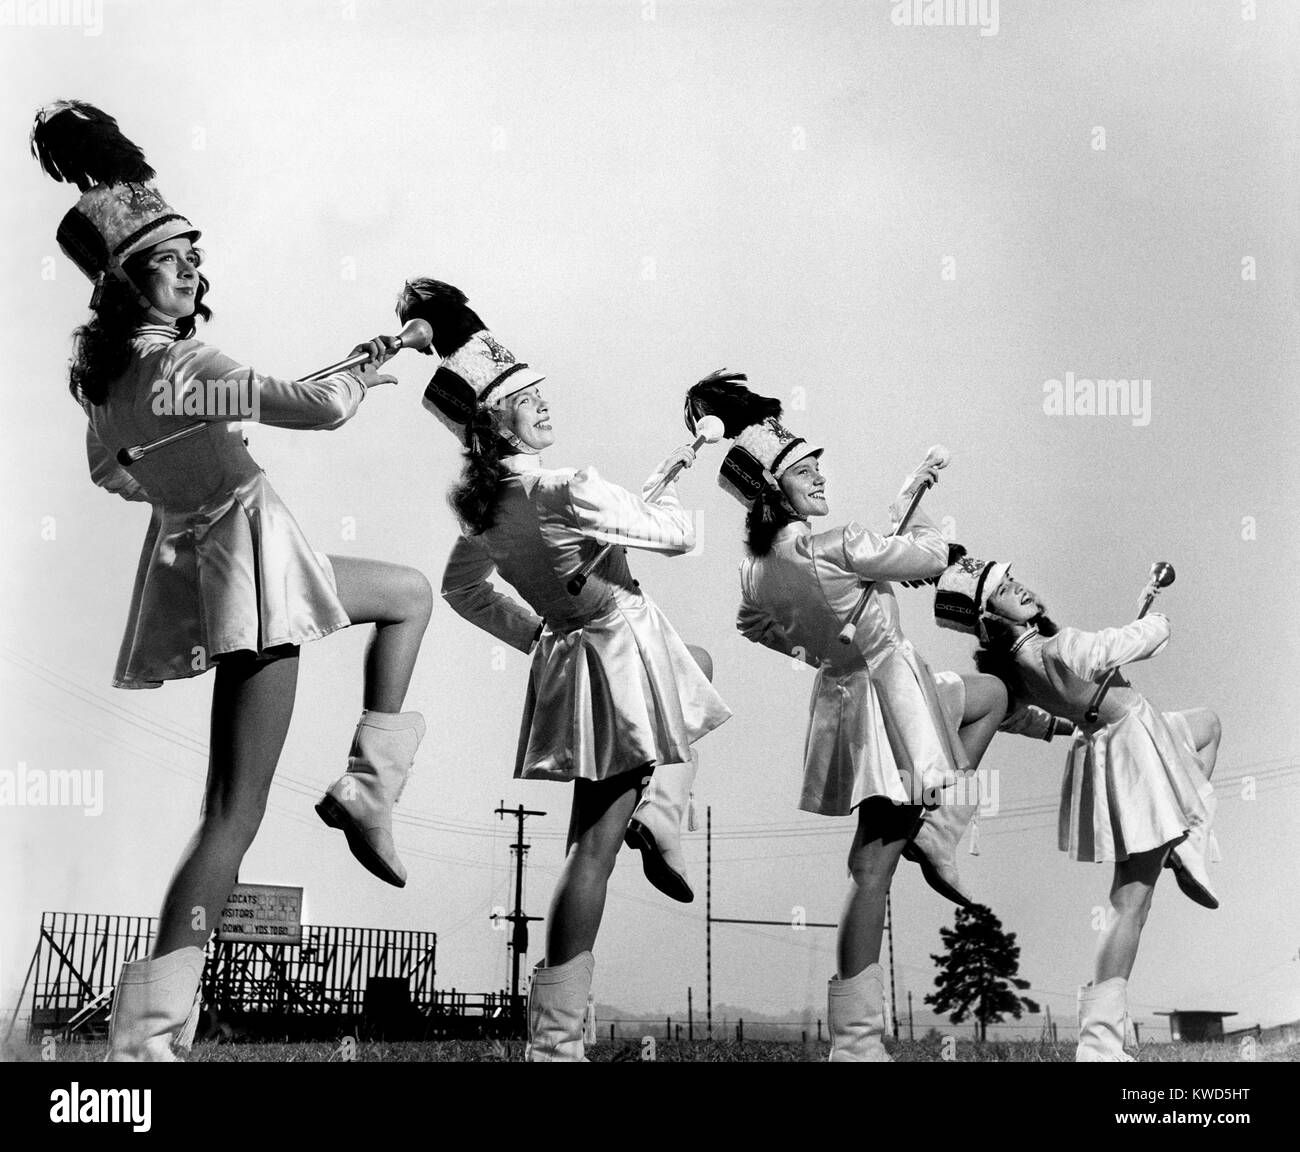 Group Of Drum Majorettes Stock Photos & Group Of Drum